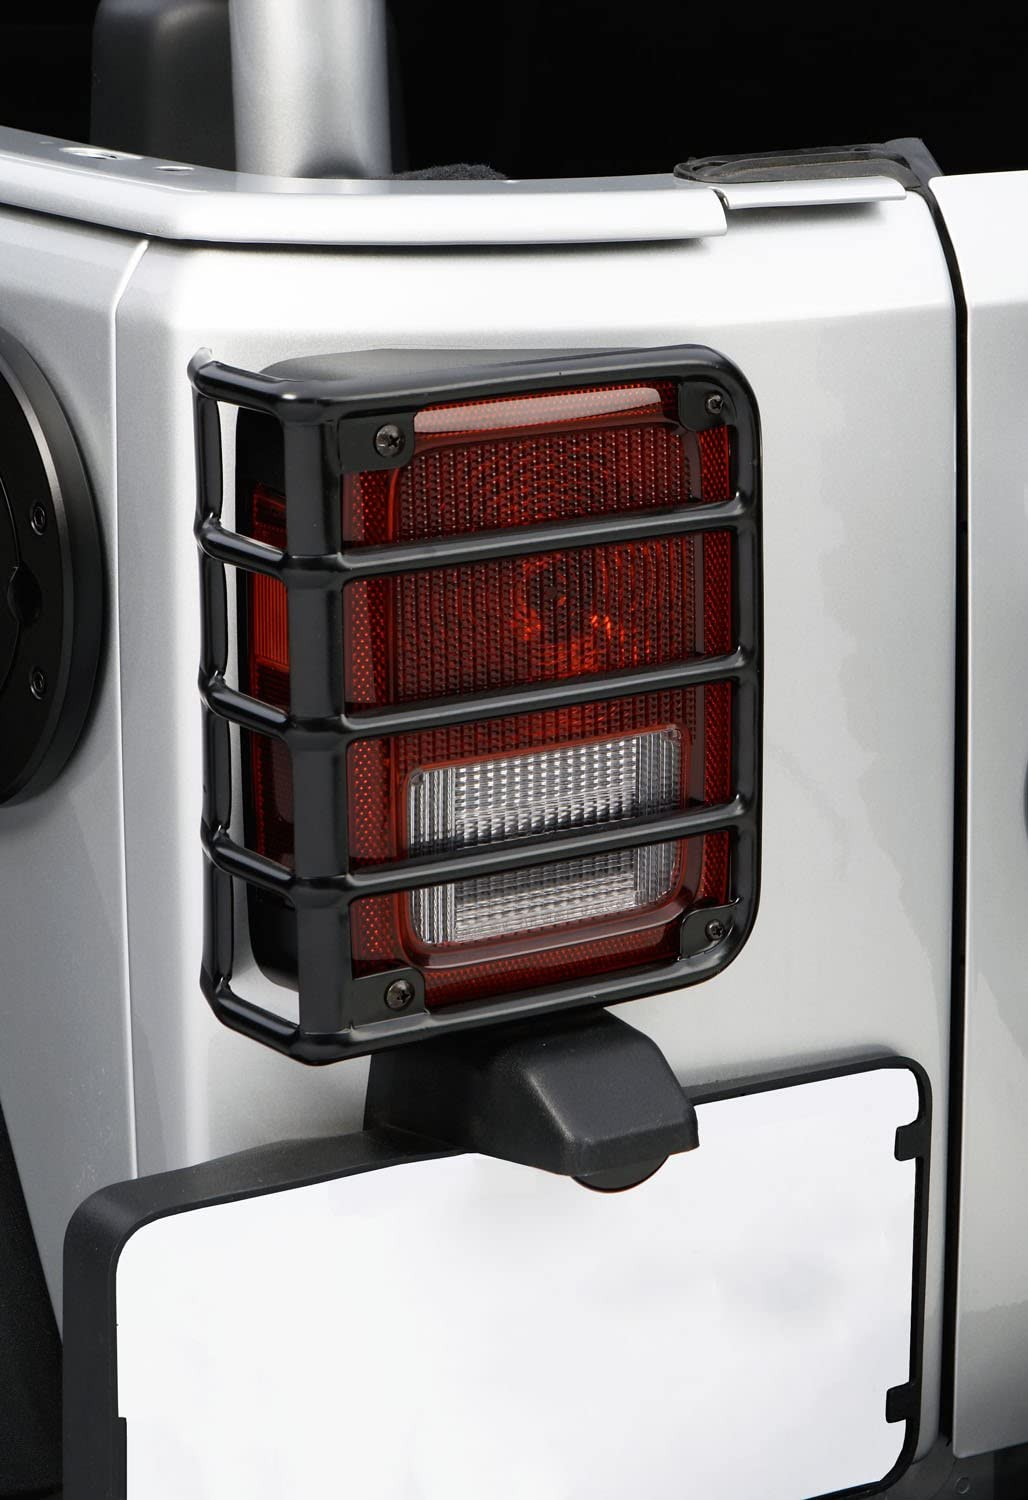 Outland 391122602 SALENEW very popular Black Euro Tail Light Wrangl for Guard Jeep JK 2021 autumn and winter new